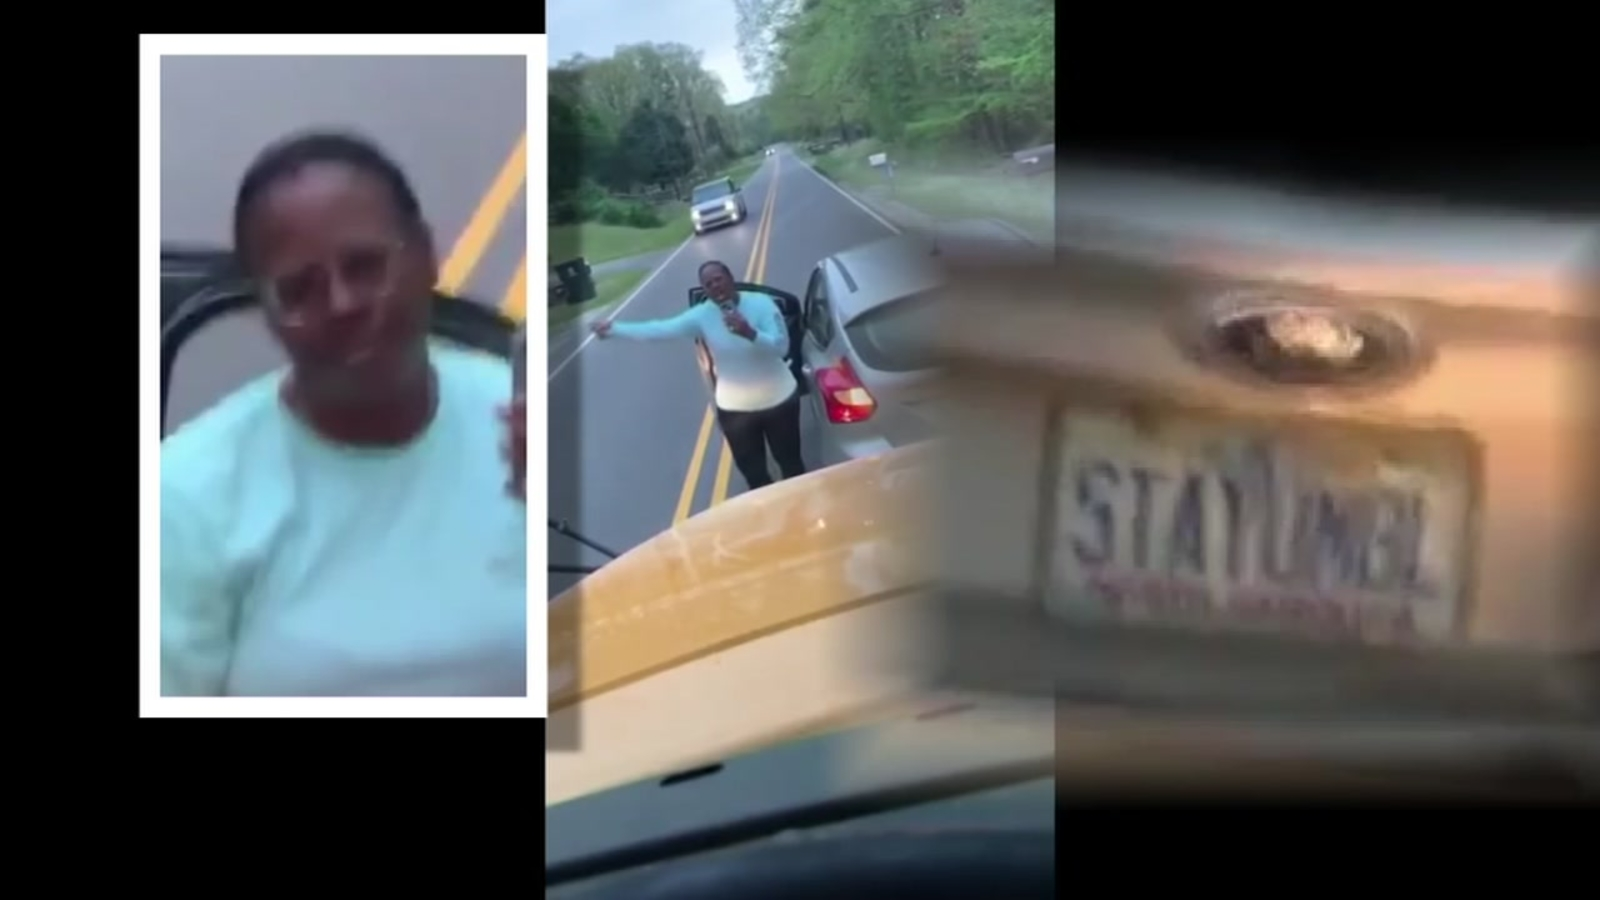 Driver known for STAYUMBL plate taken to jail, ordered to turn over driver's license